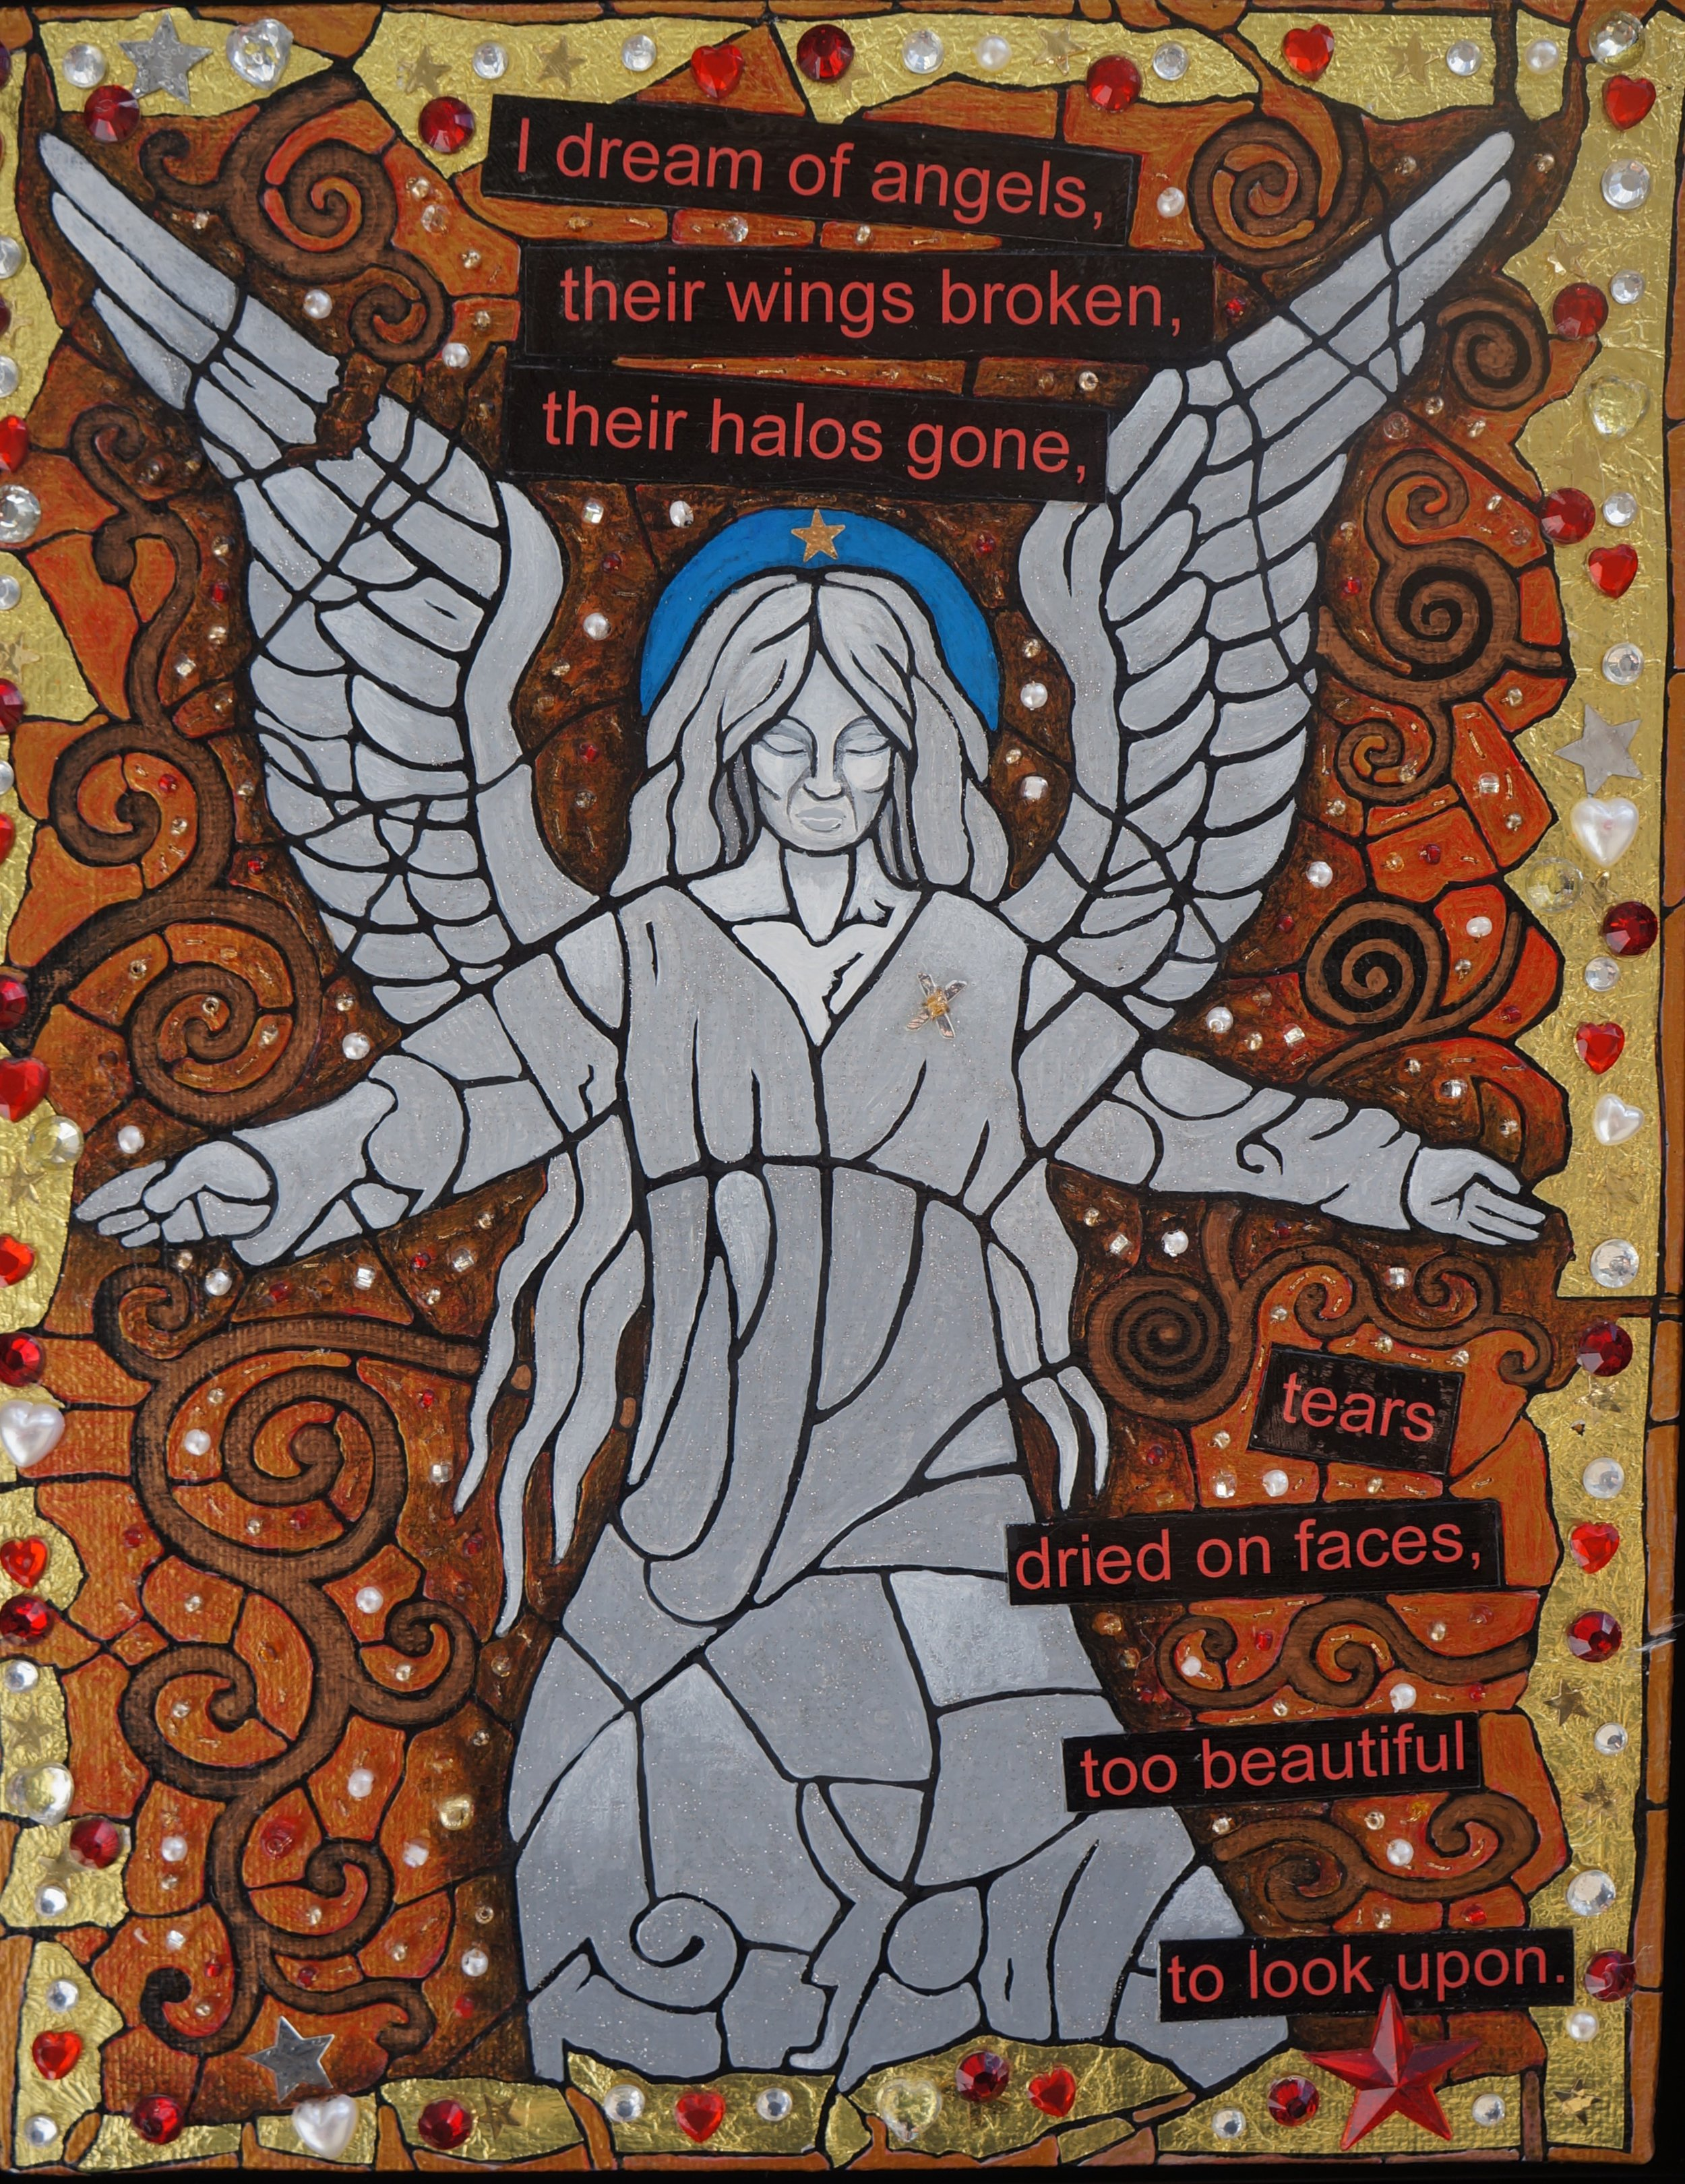 """I dream of angels"" - mixed media collage on canvas.  Acrylic paint, beads, gold foil, text.  I dream of angels,  their wings broken,  their halos gone,  tears  dried on faces  too beautiful  to look upon."